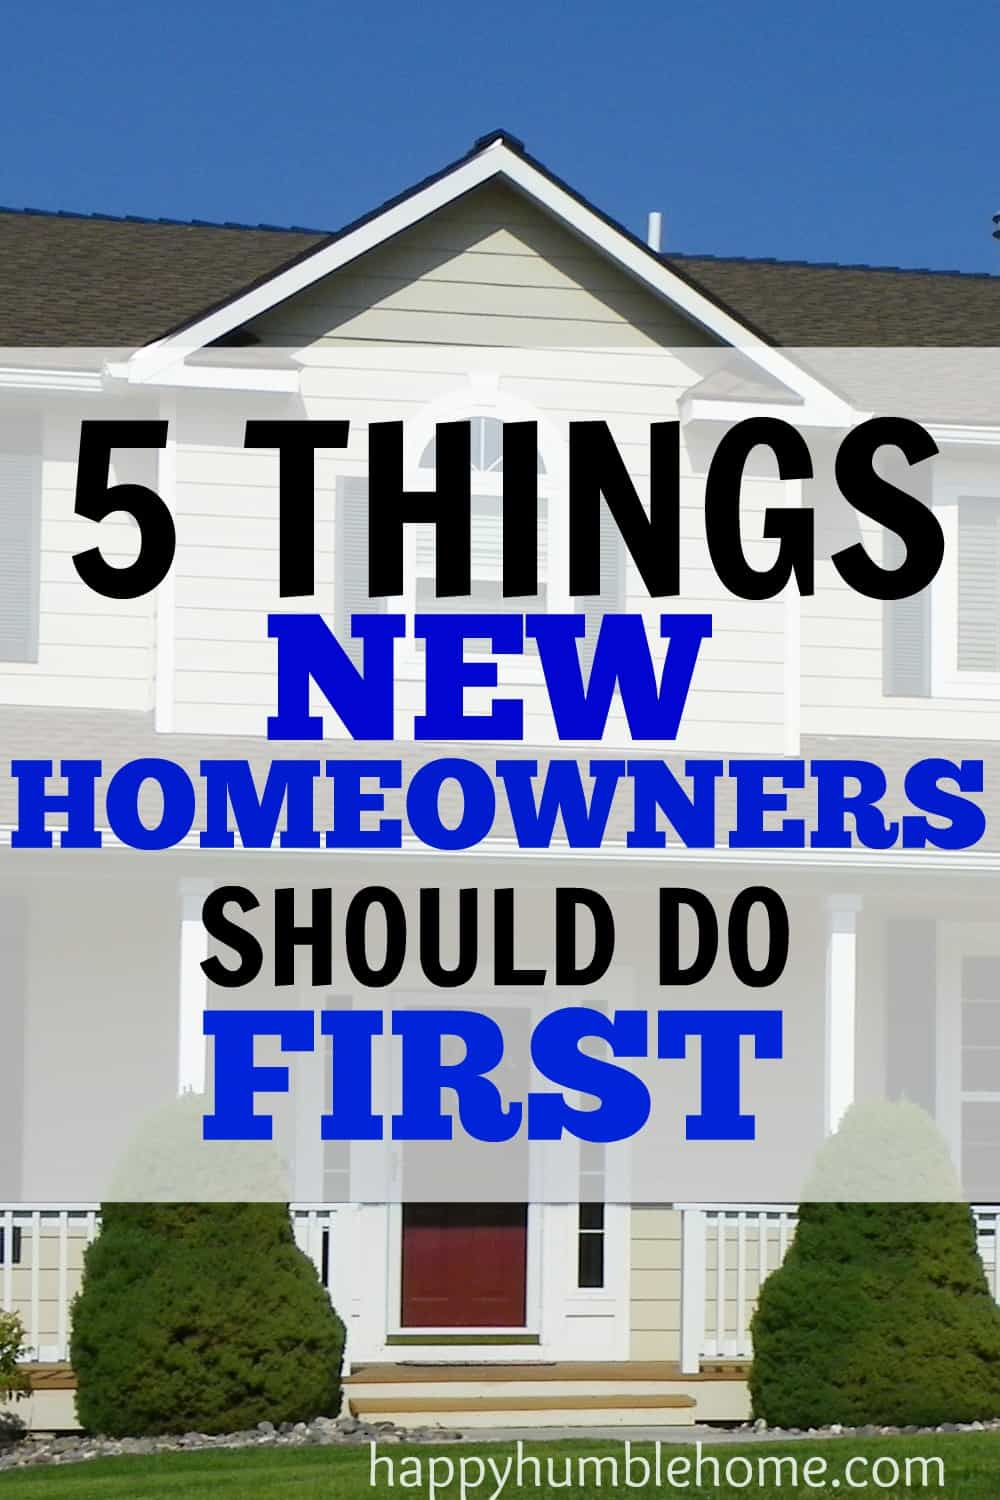 5 things new homeowners should do first | happy humble home